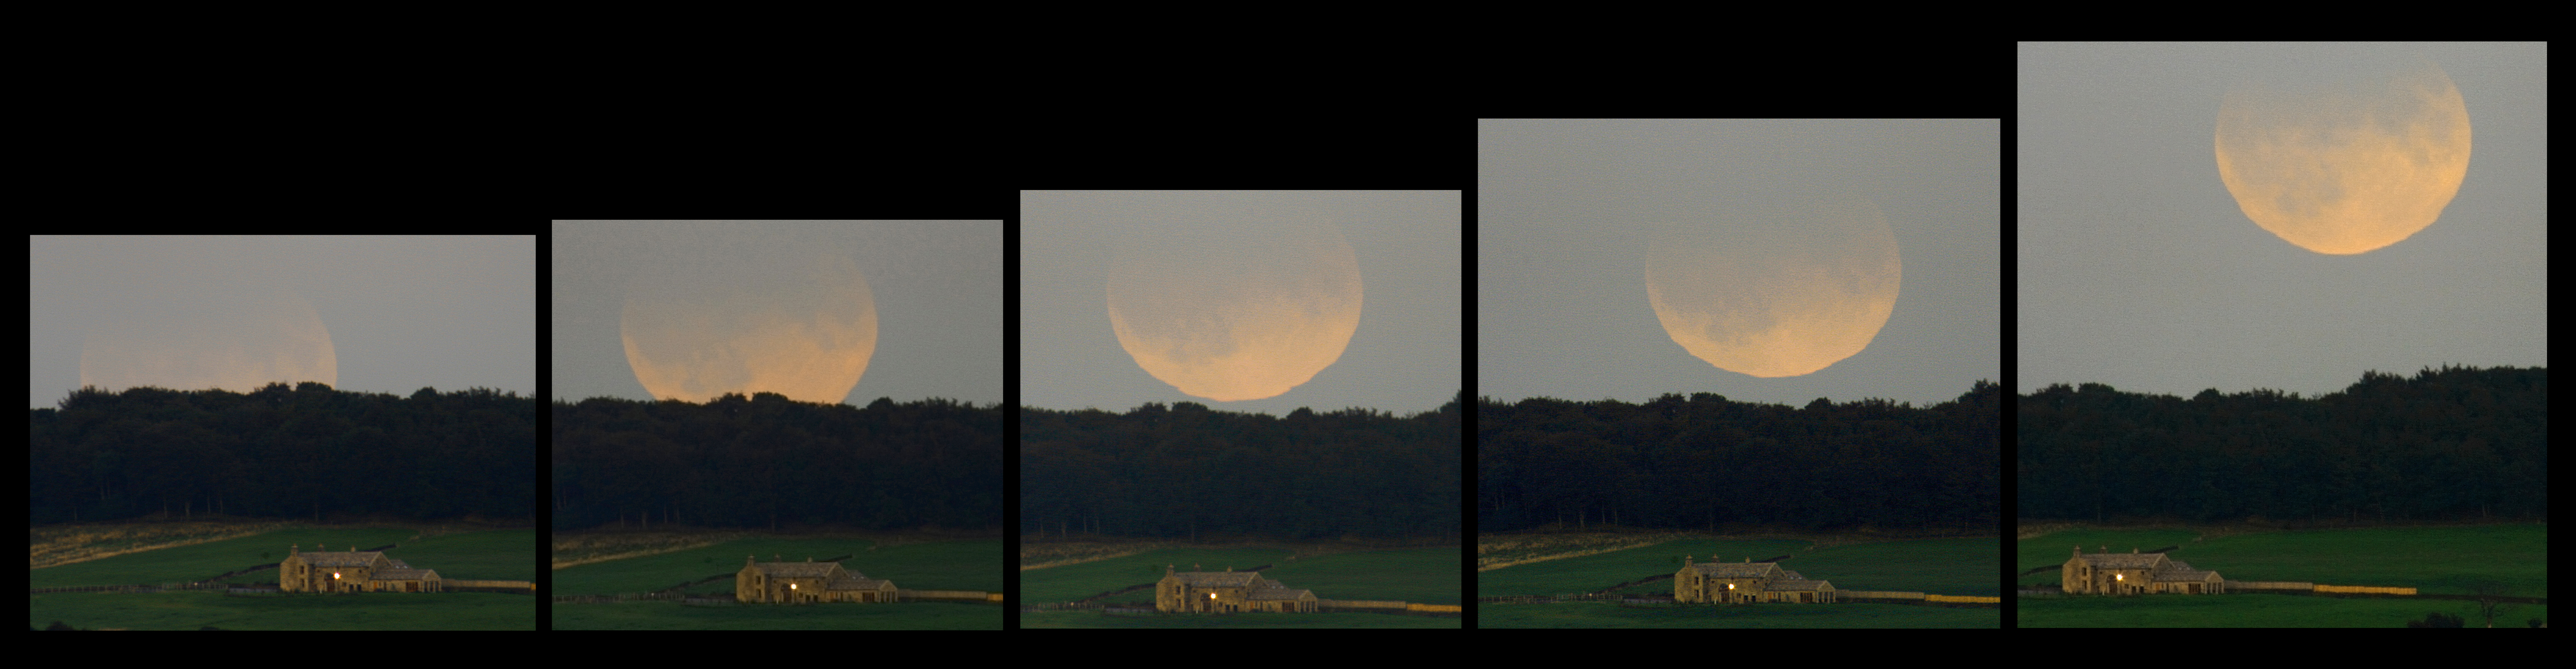 Eclipsed Moon Rising Over England